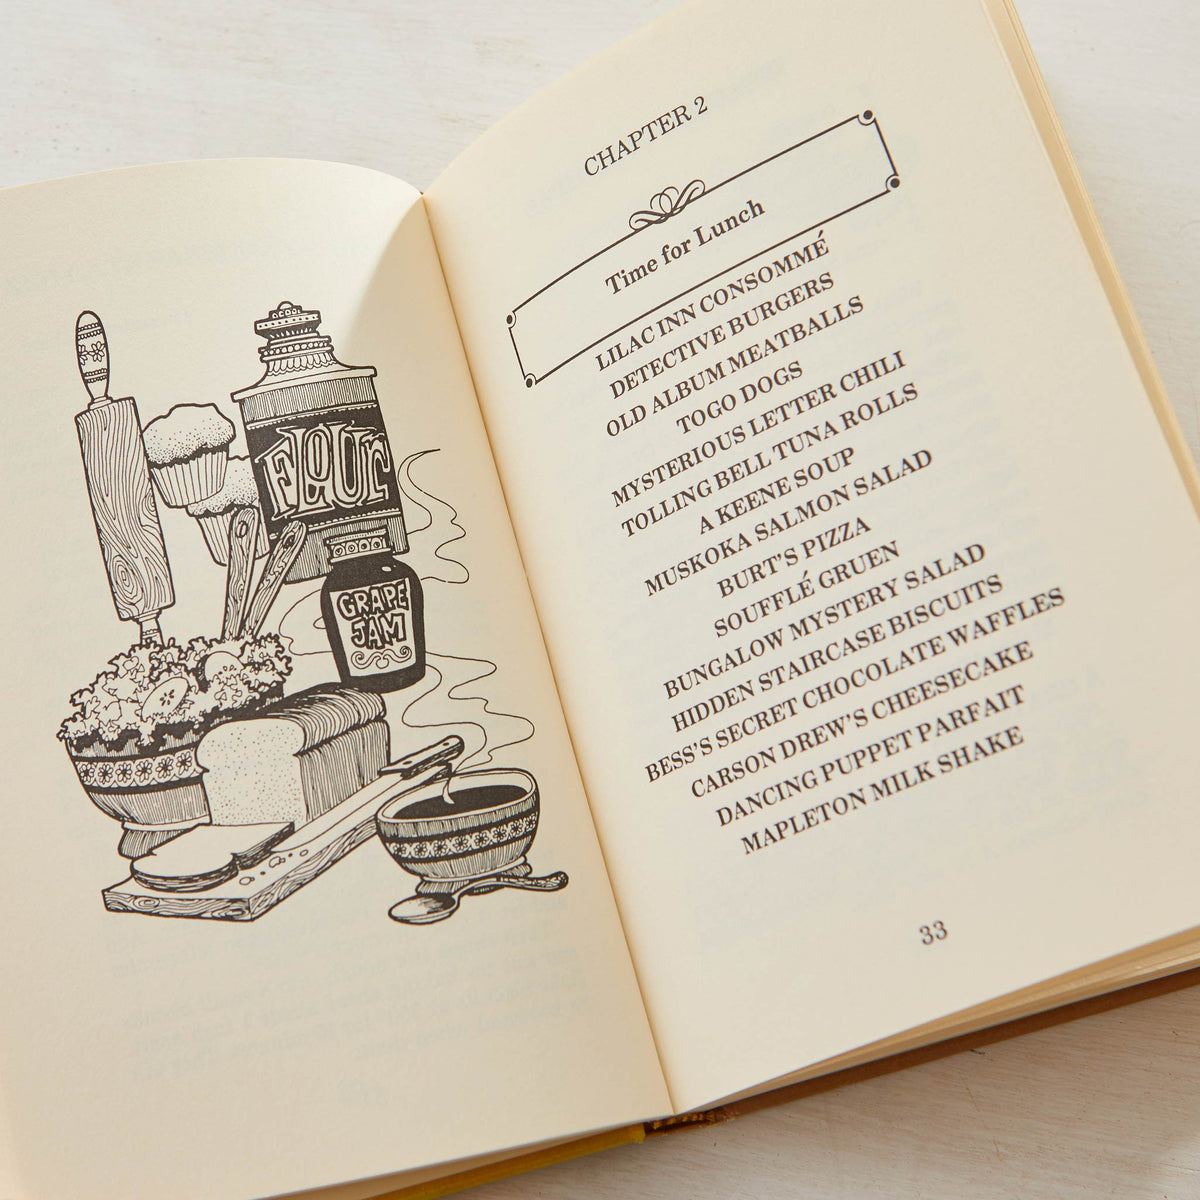 THE NANCY DREW COOKBOOK